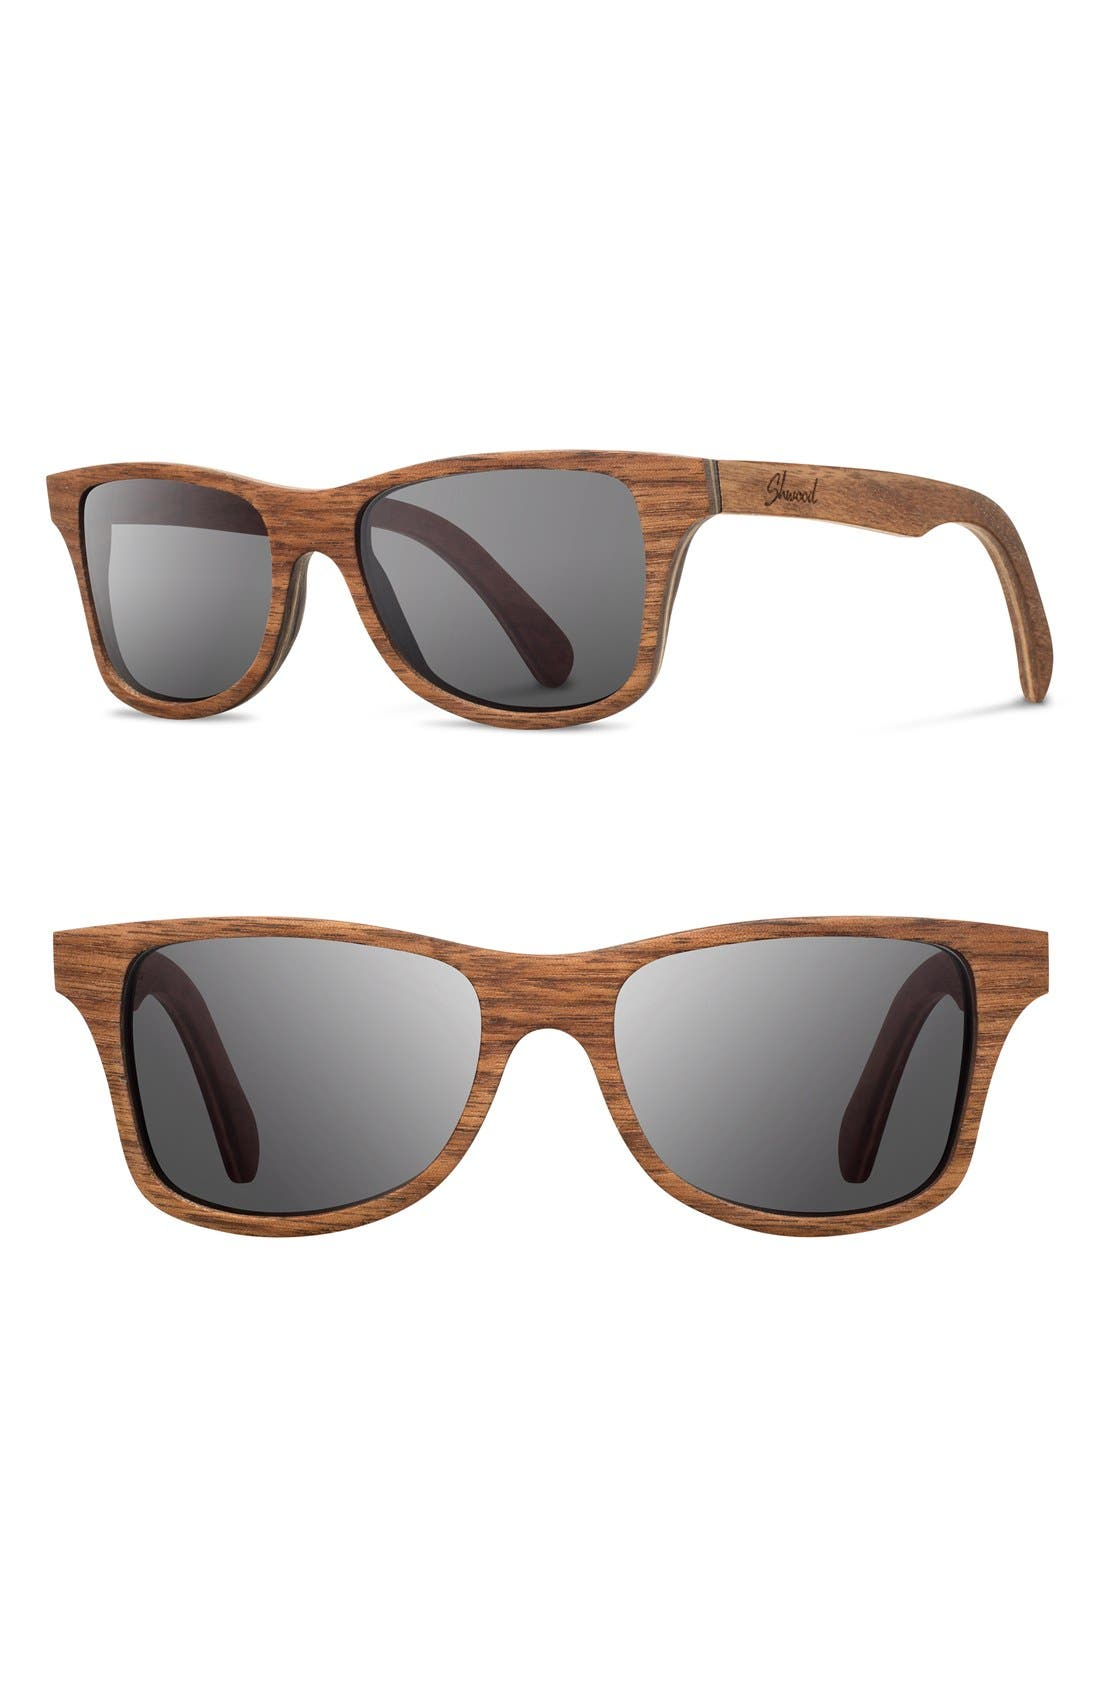 'Canby' 54mm Wood Sunglasses,                             Main thumbnail 1, color,                             201